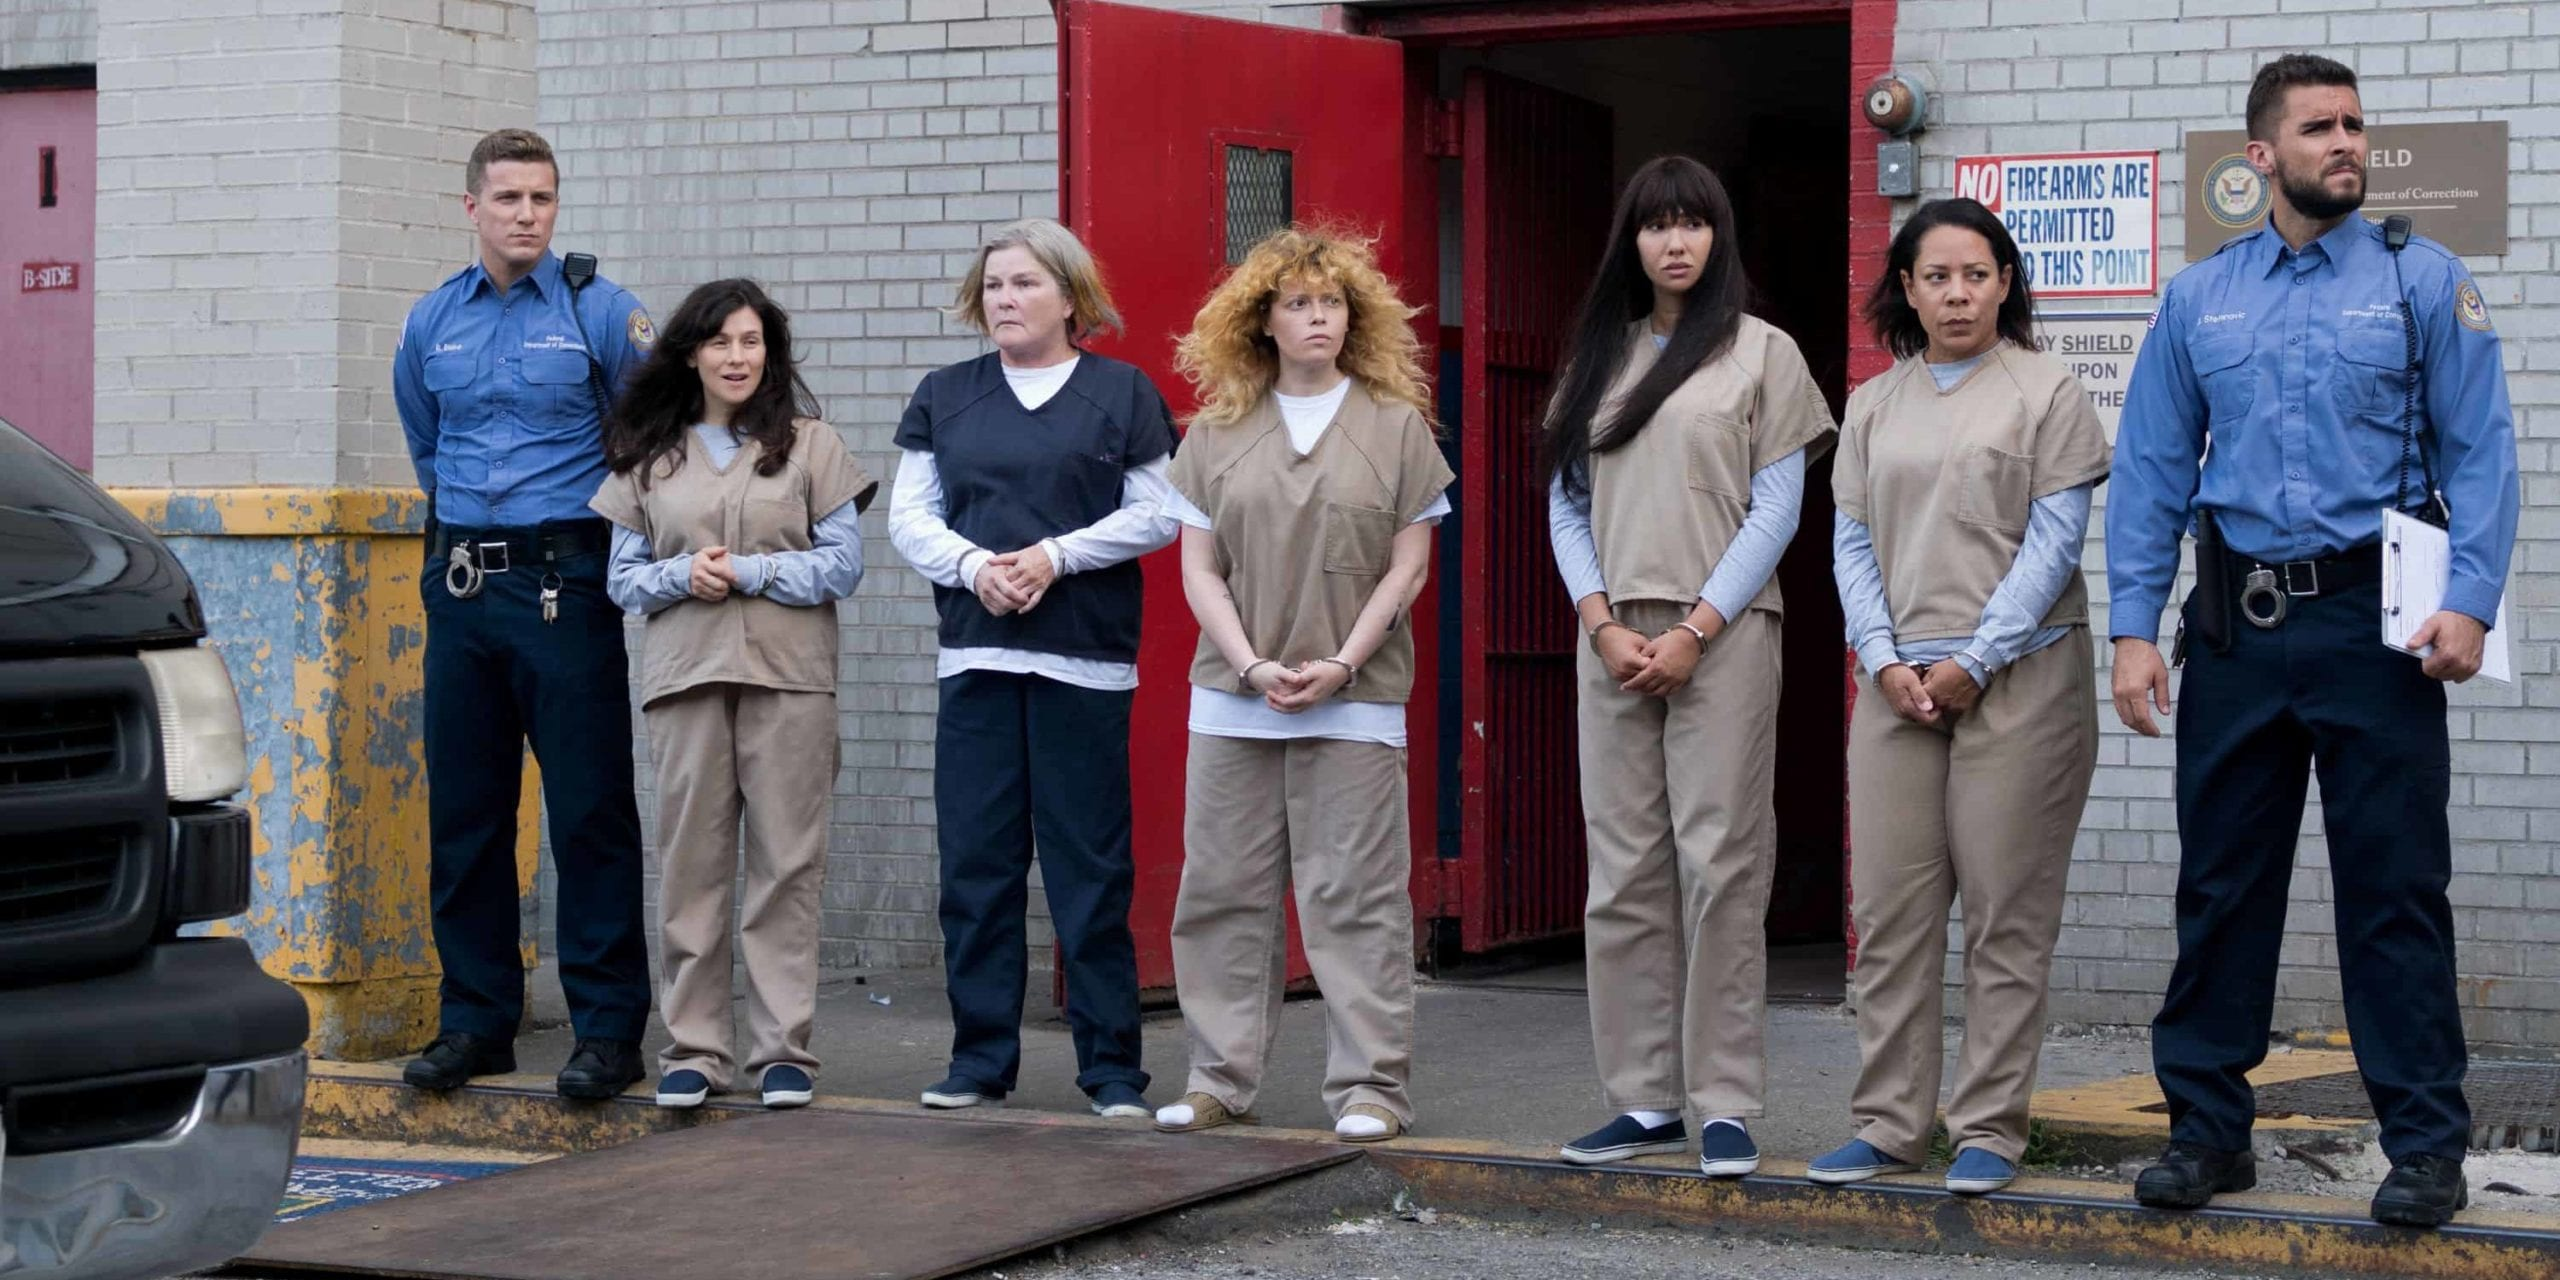 Orange is the new black season 7 review